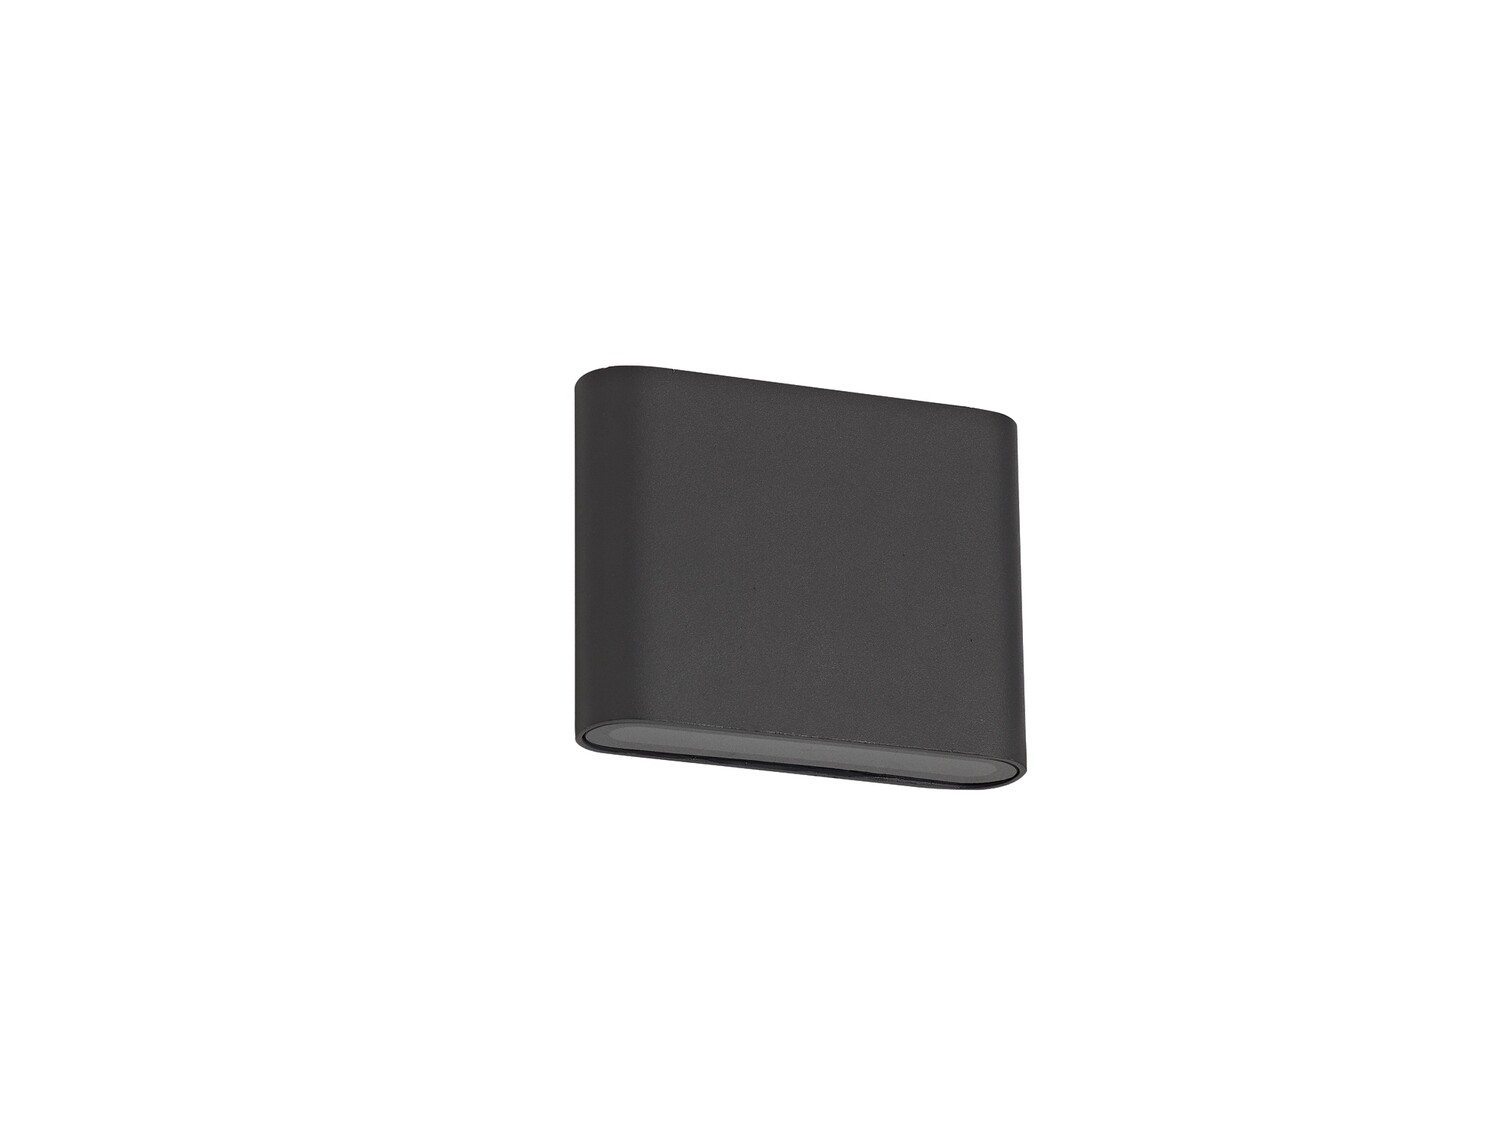 Contour Small Up &  Down Wall Light LED 2x3W 350lm 3000K IP54 Anthracite